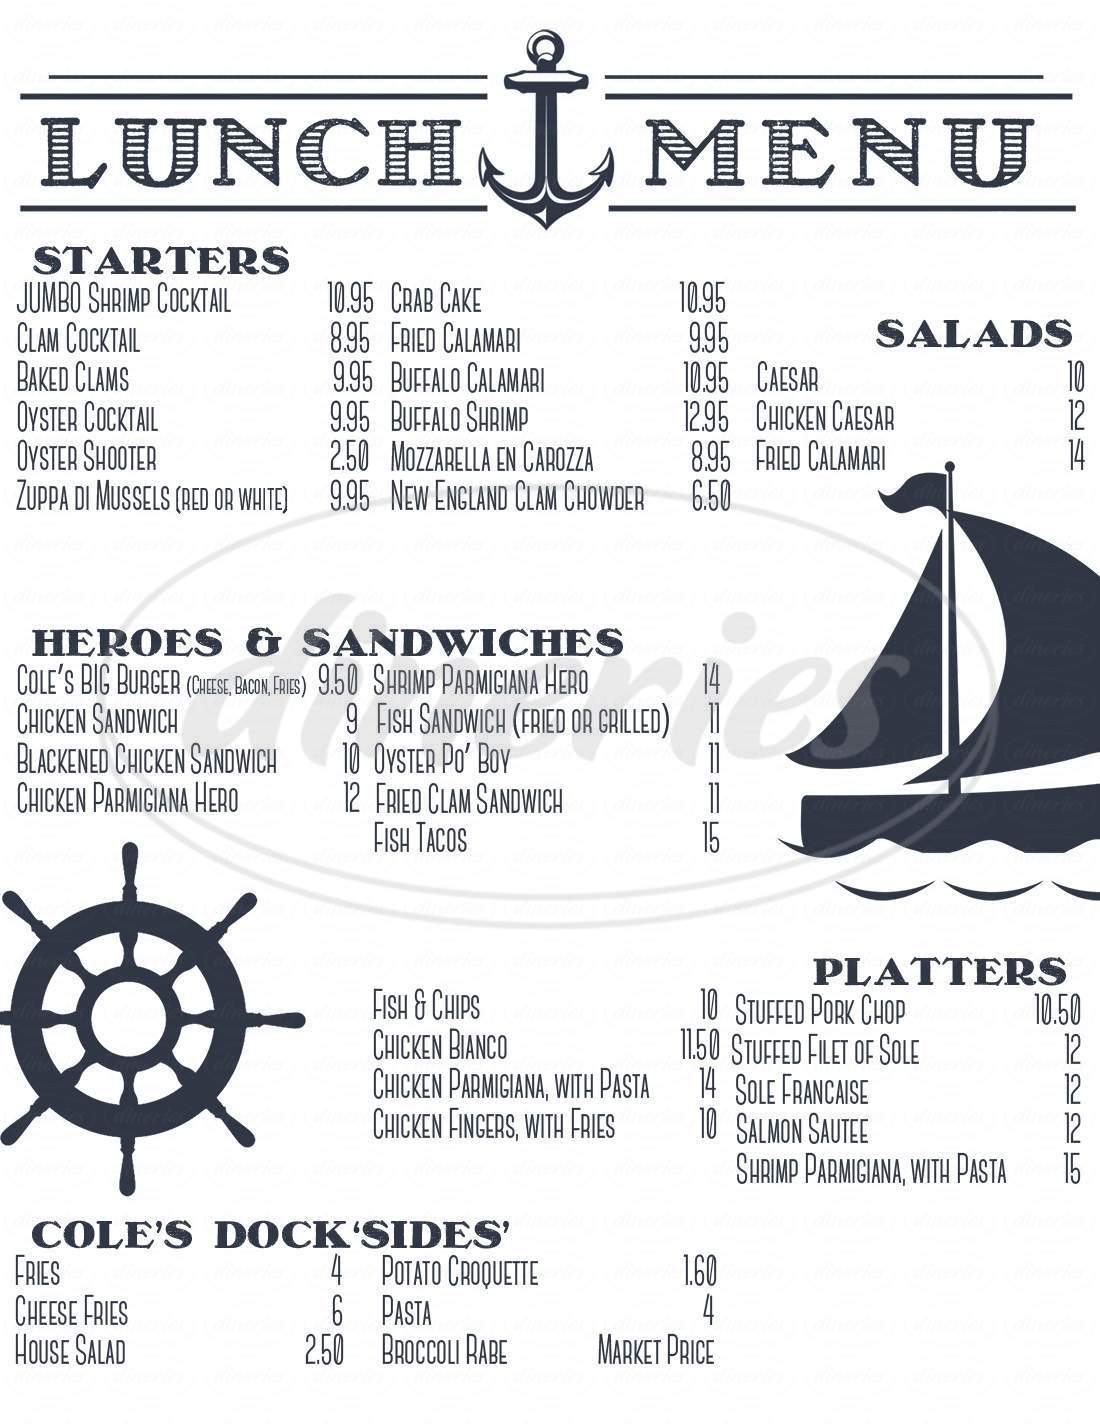 menu for Coles Dockside Restaurant